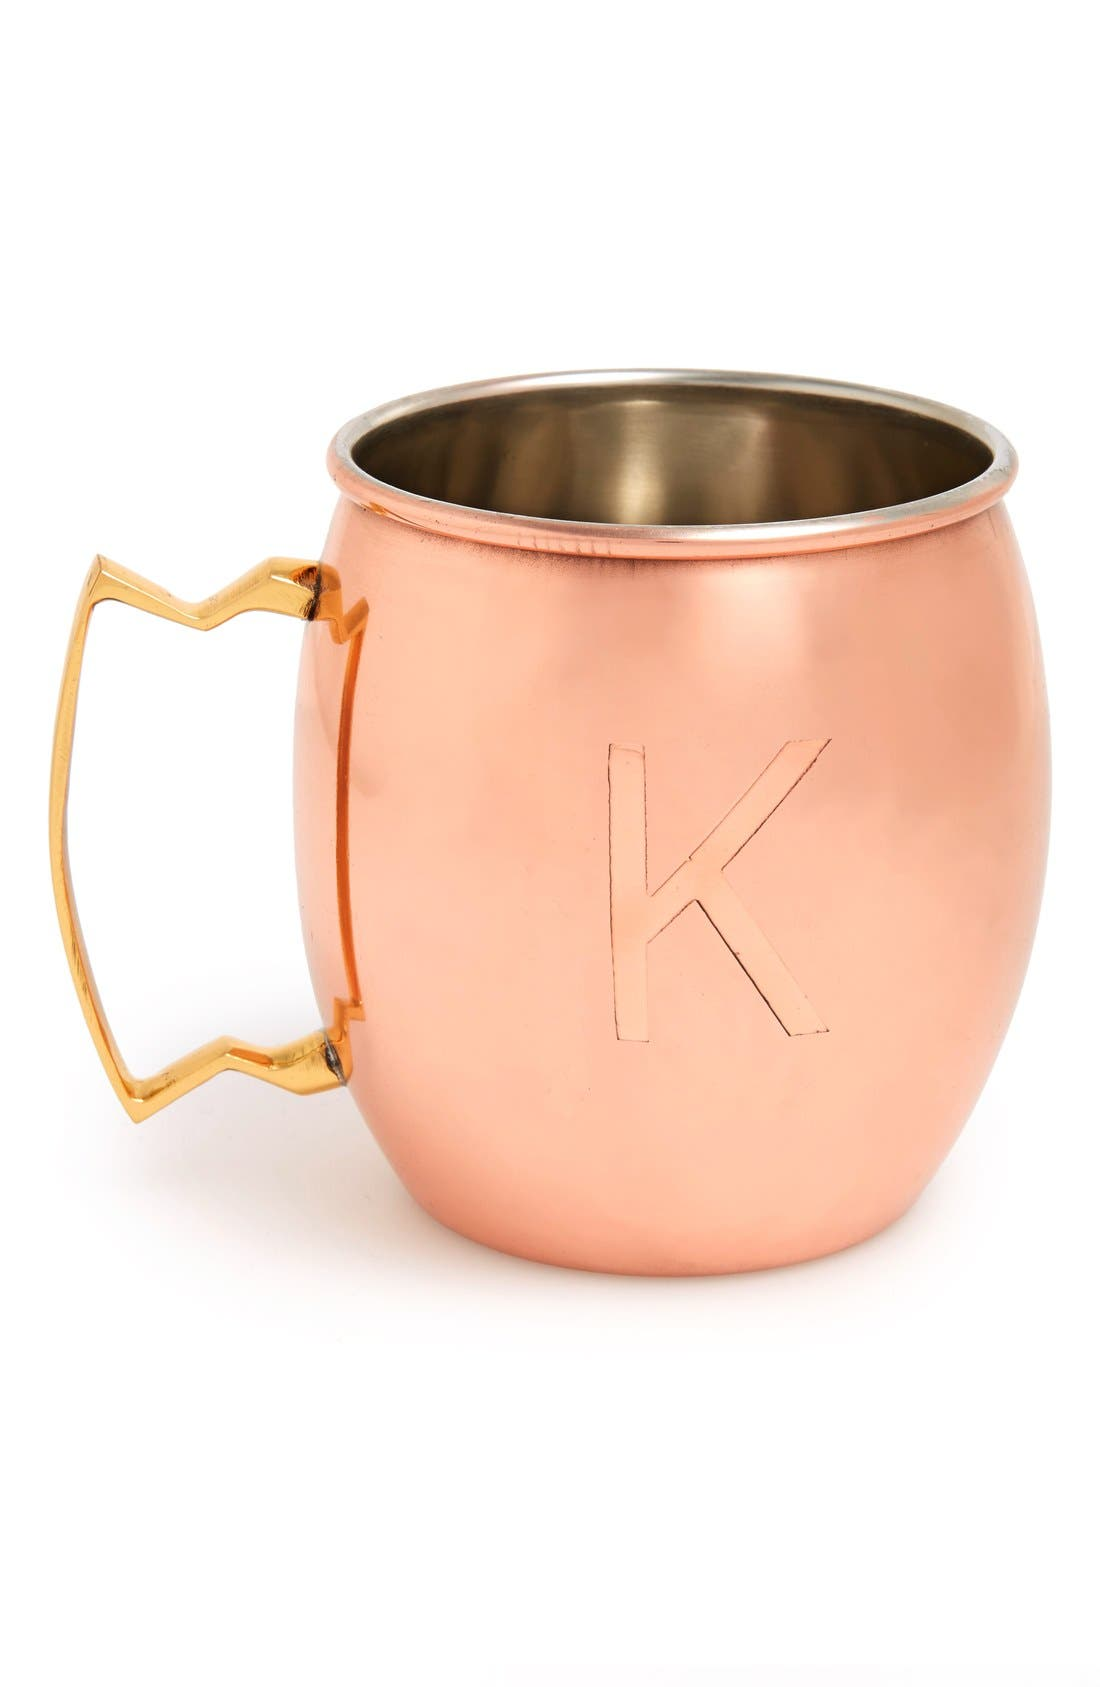 Alternate Image 1 Selected - MG Décor Customized Copper Moscow Mule Mug